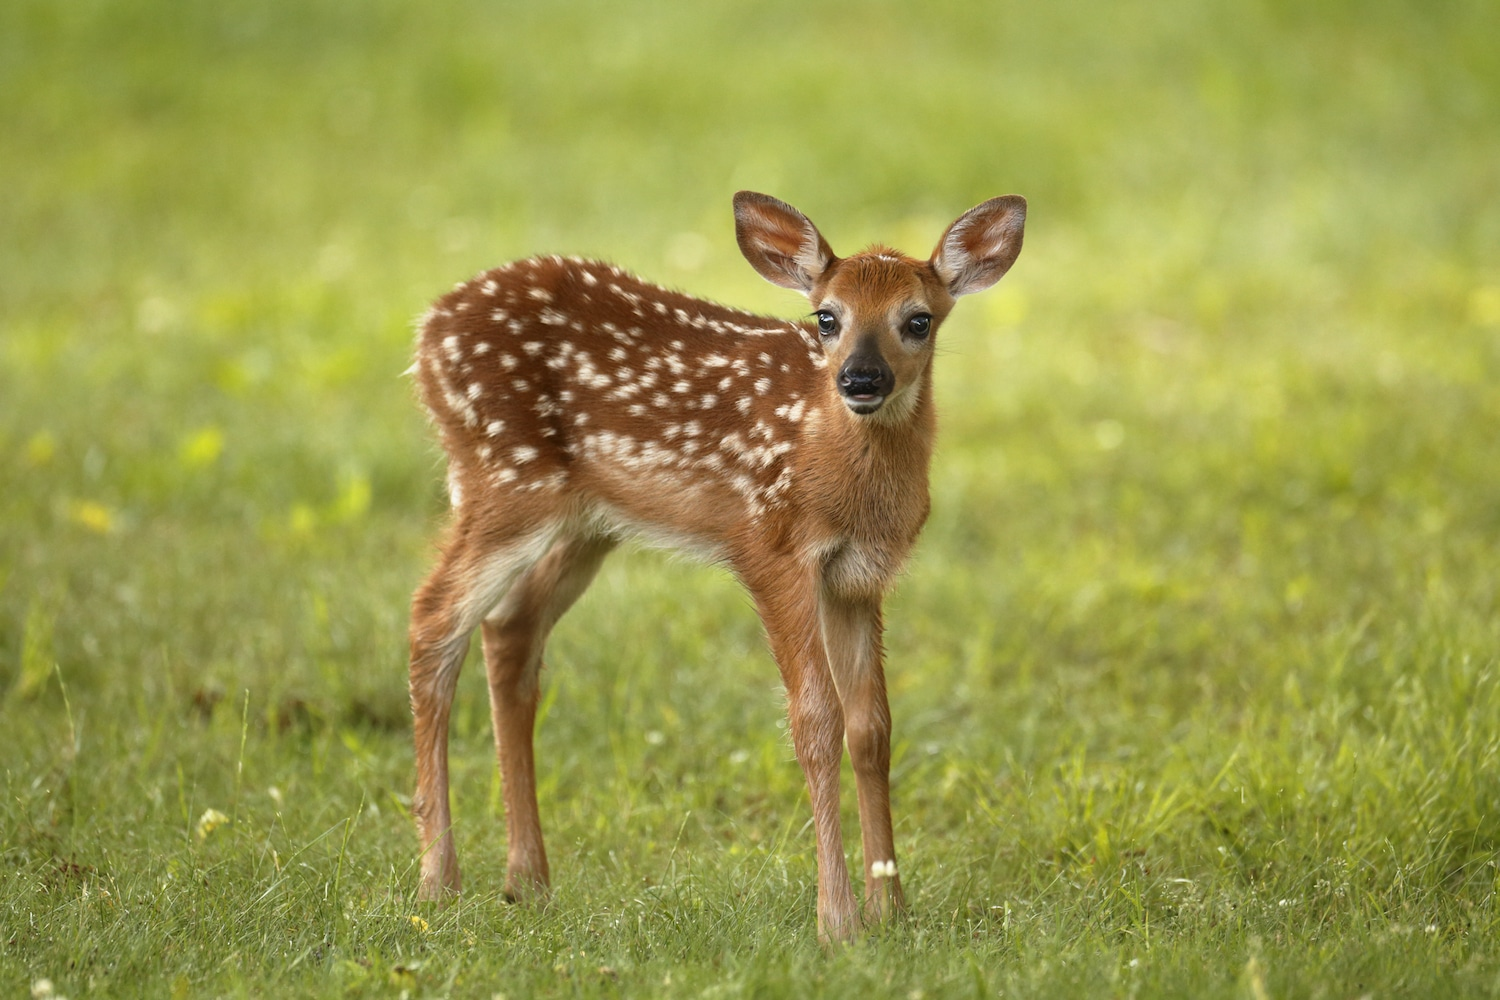 Leave the Fawn Alone; It's Likely Not Abandoned